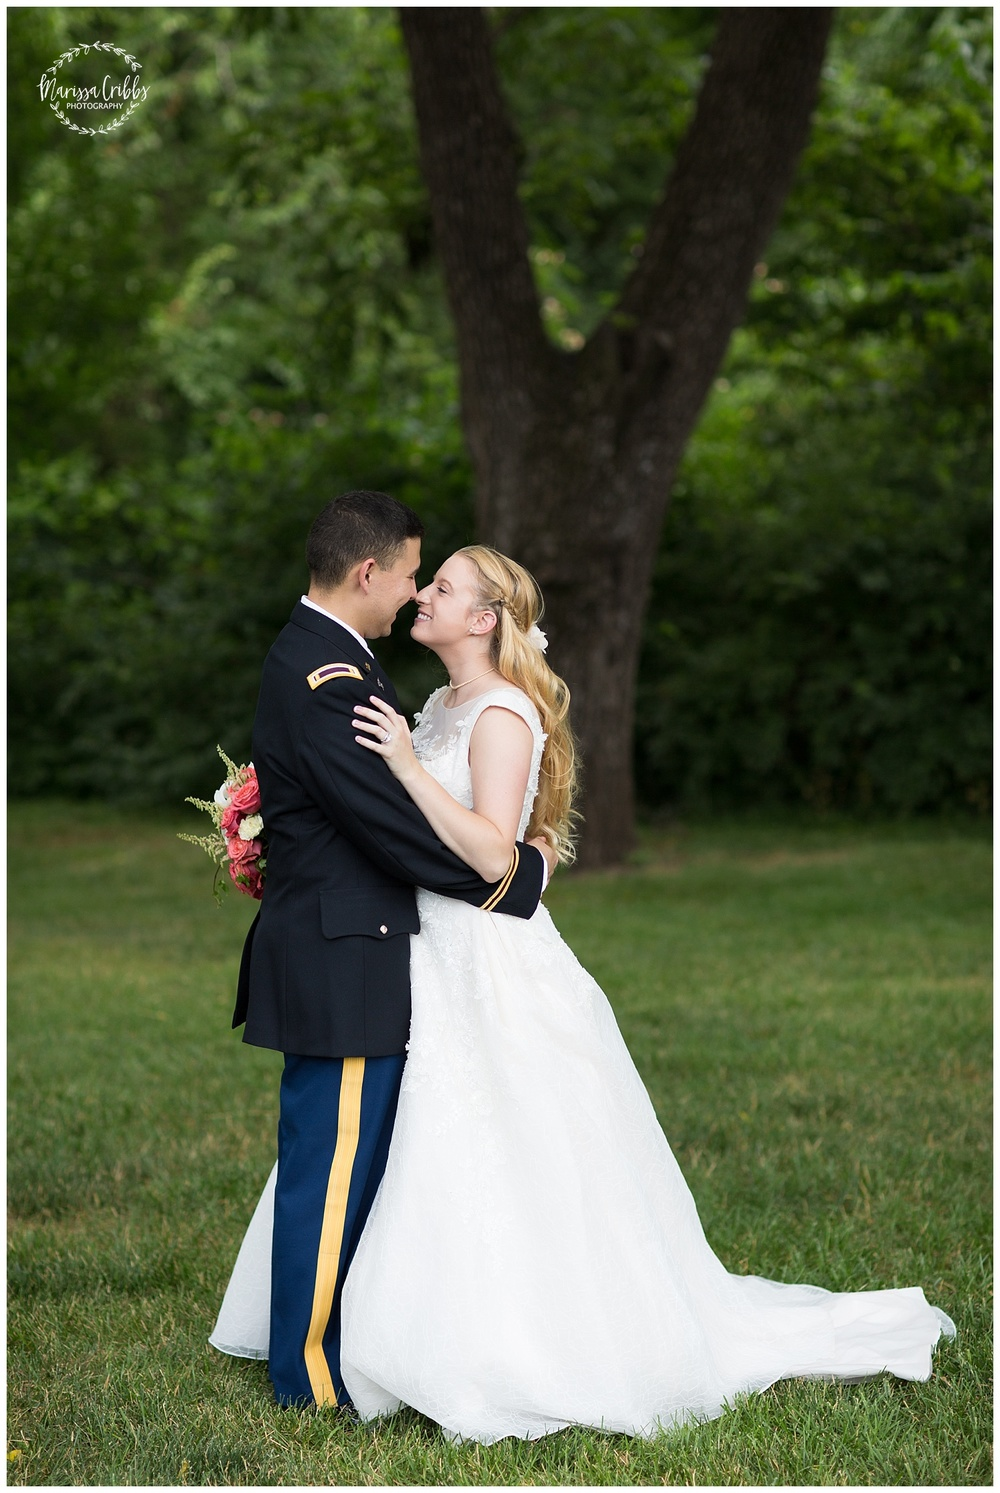 Jimenez Wedding | Marissa Cribbs Photography_0283.jpg